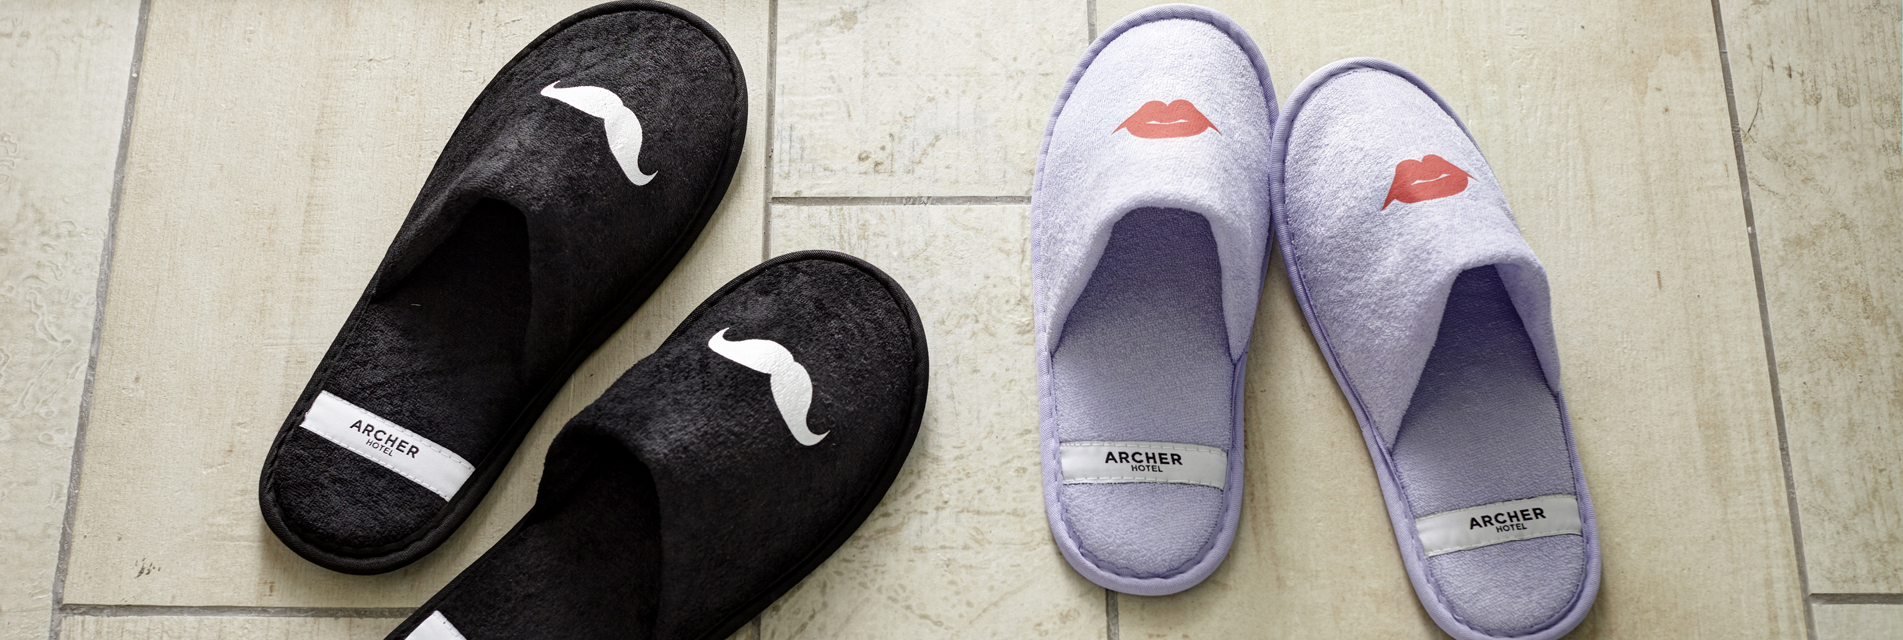 Slippers at Archer Hotel Austin   7 Fun Facts About Archer